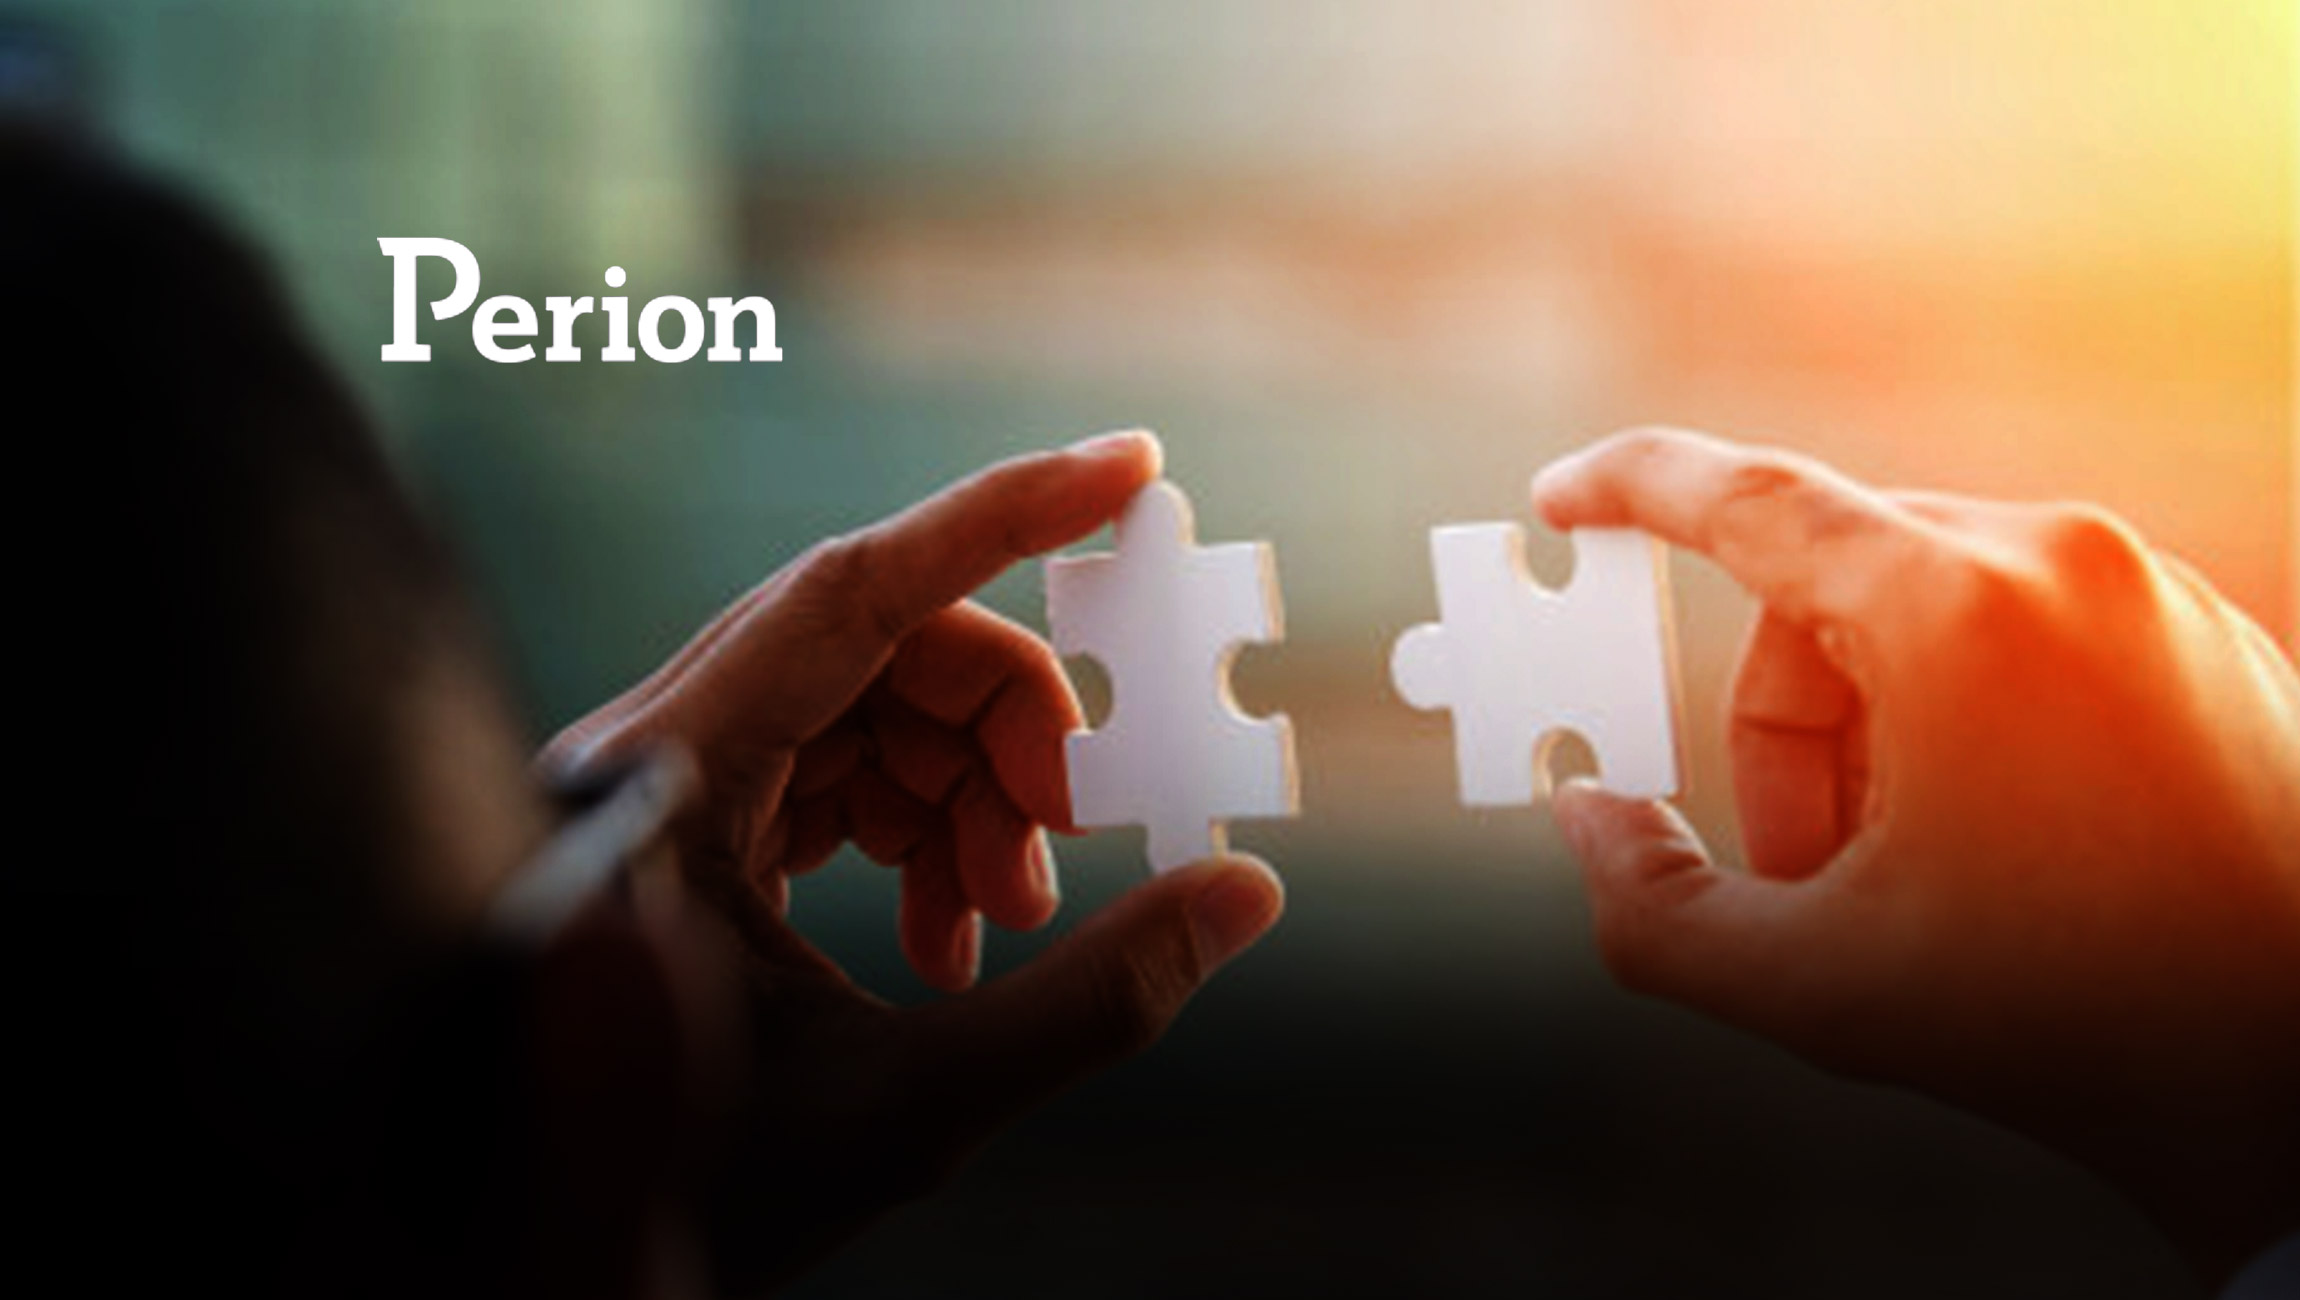 Perion to Acquire Pub Ocean, an Innovative Publisher Technology Platform, for up to $22 Million